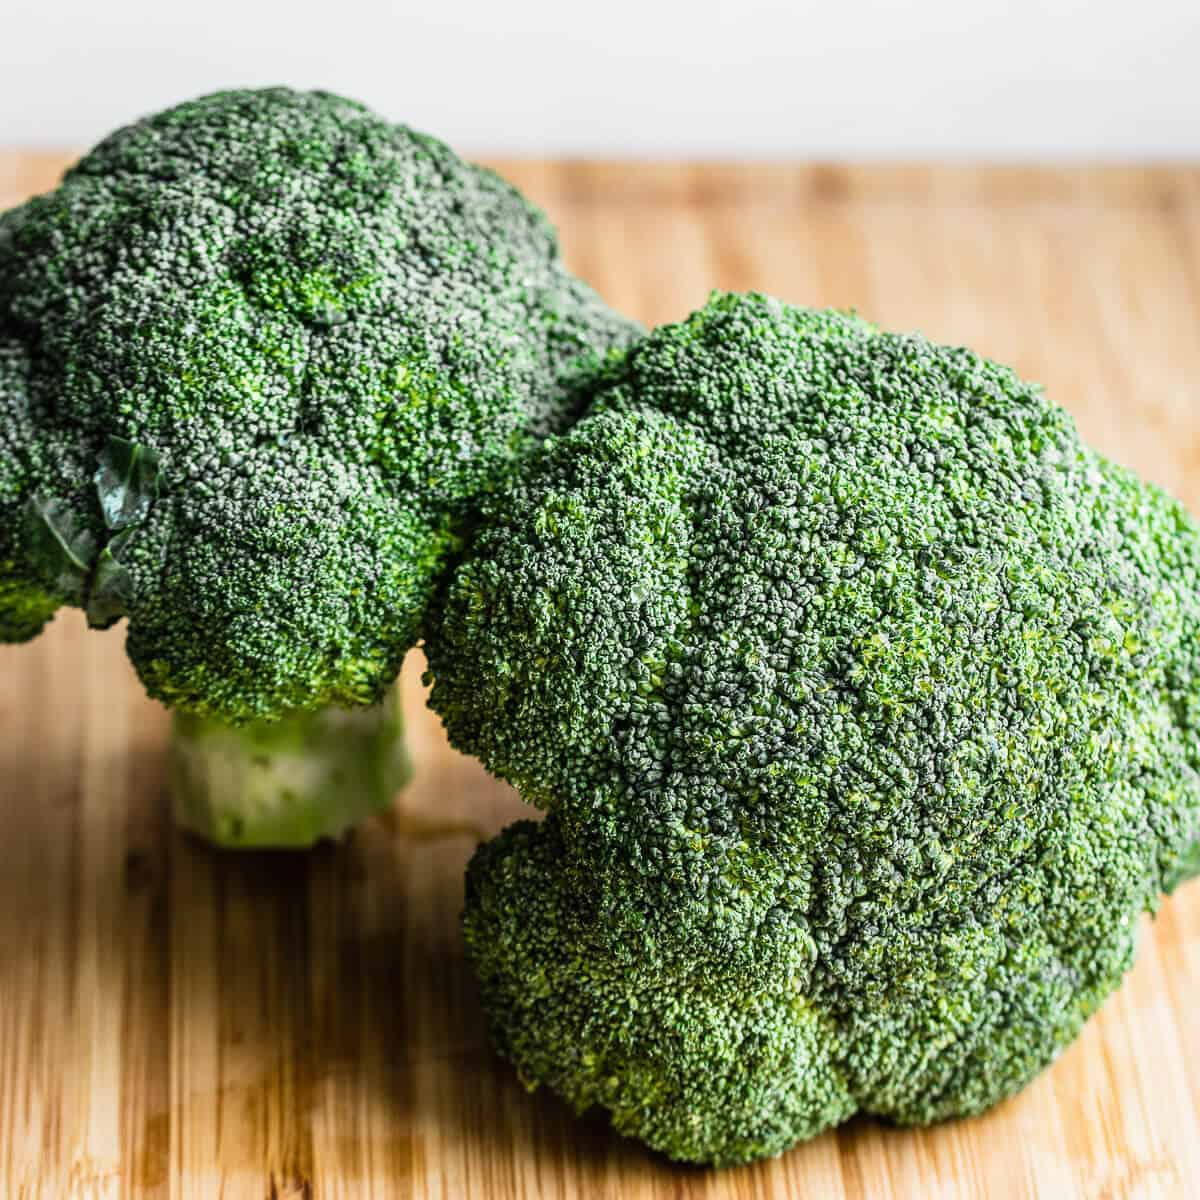 two heads of broccoli on wooden board